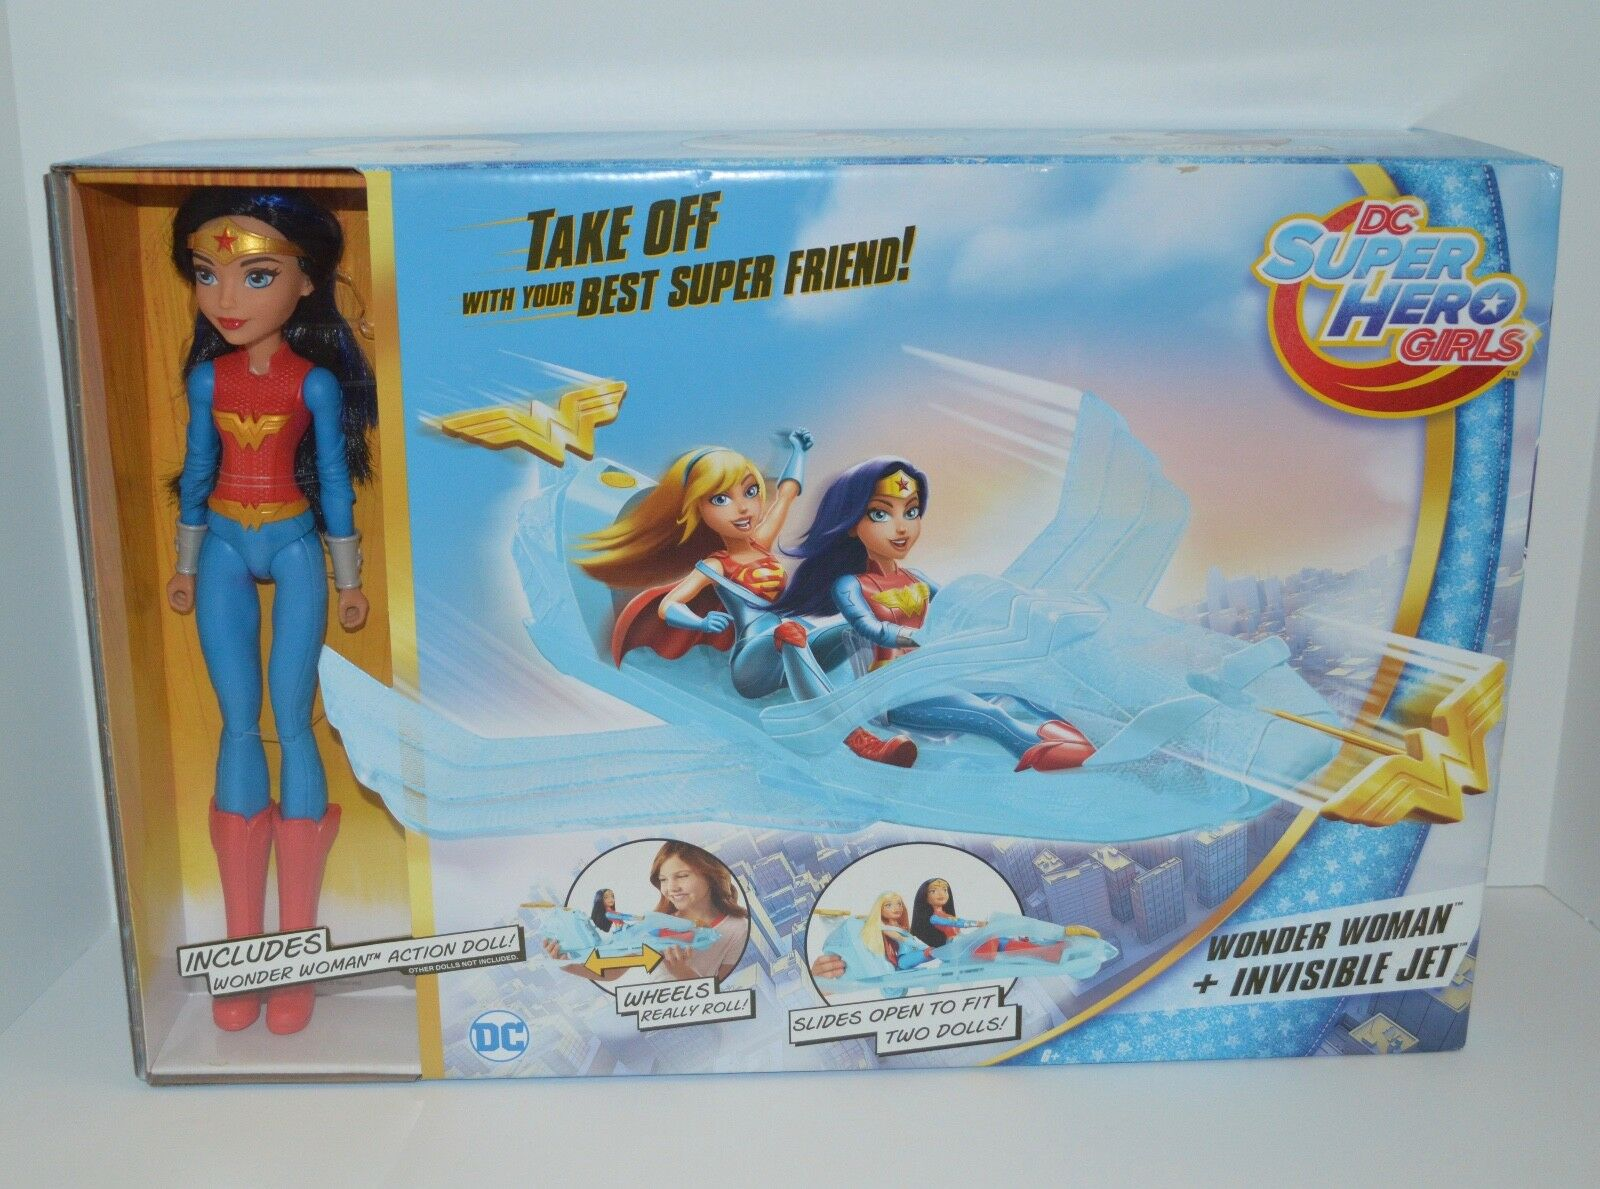 DC Superhero Girls Wonder Woman + Invisible Jet Action Doll Brand New With Box